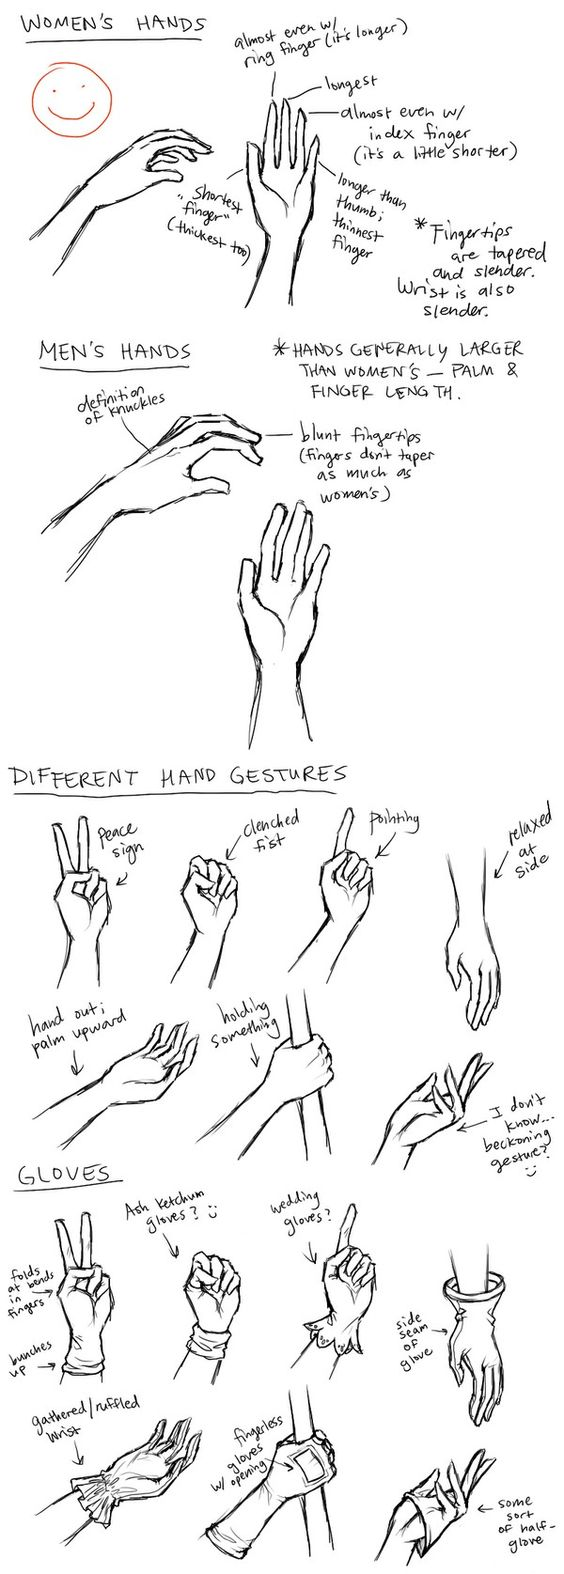 Im Terrible At Drawing Hands So This Is Pretty Useful Especially How It Does Both Male And Female